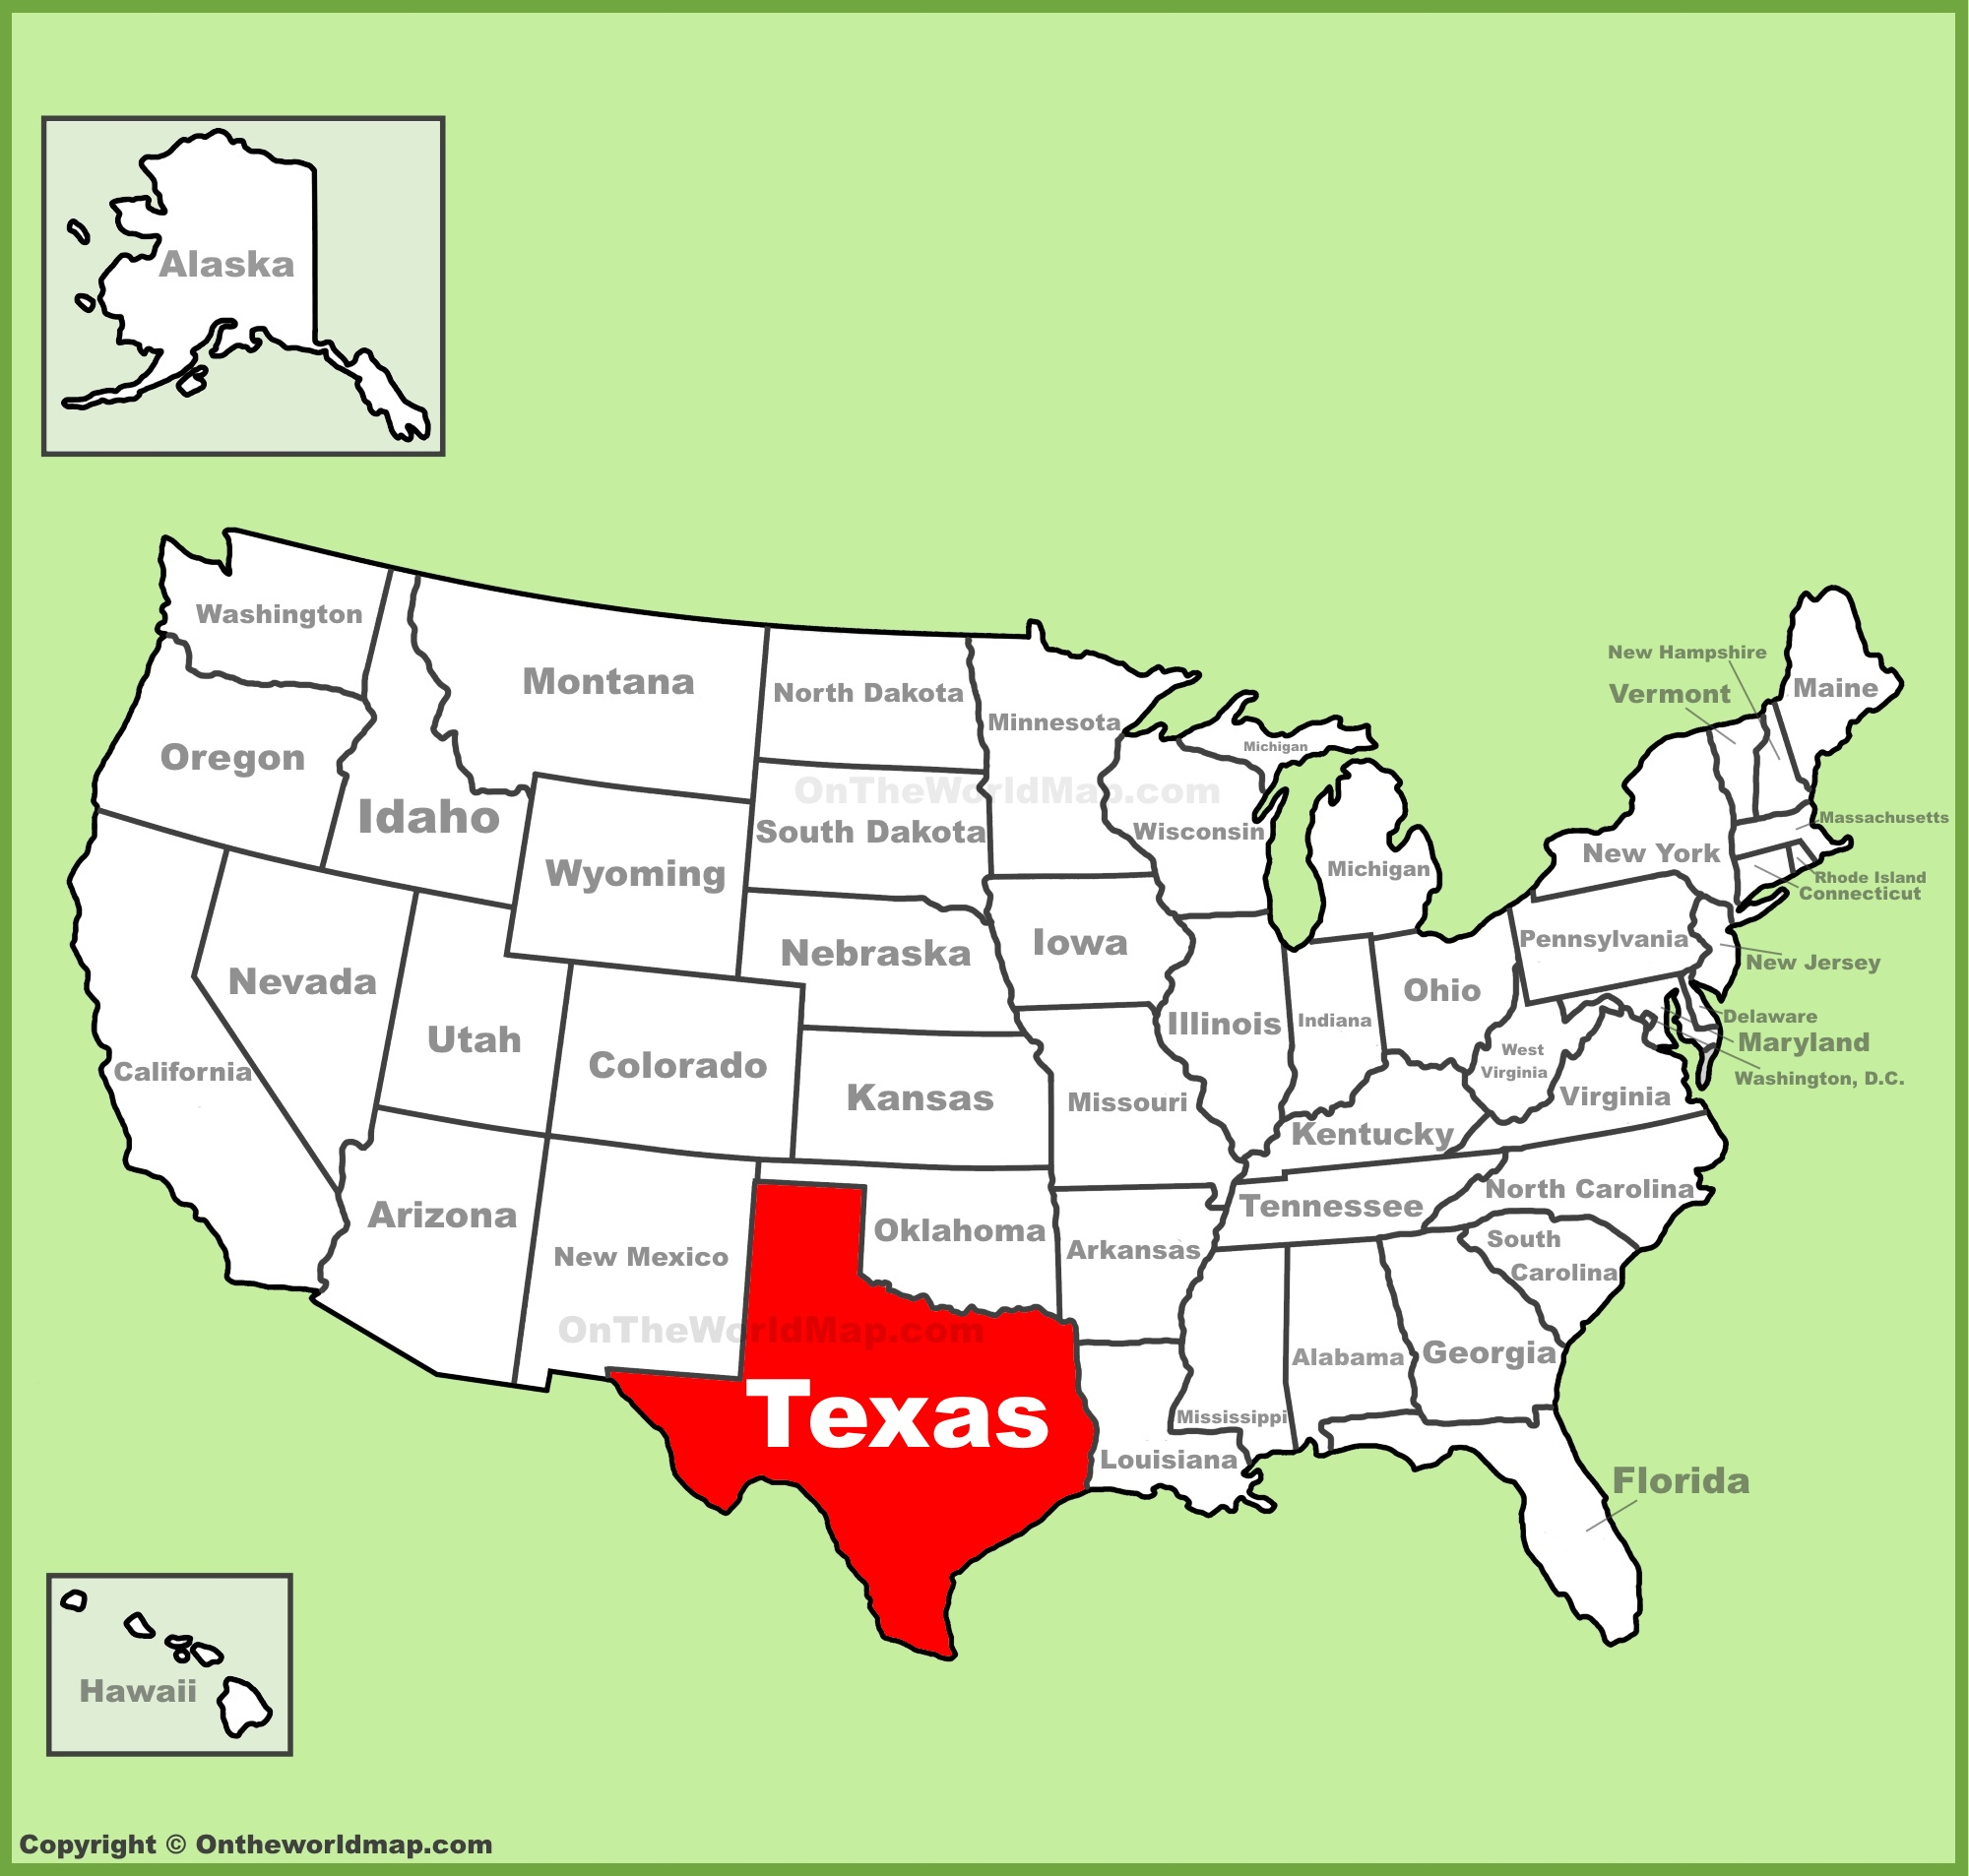 Texas Location On The US Map - State map of tx